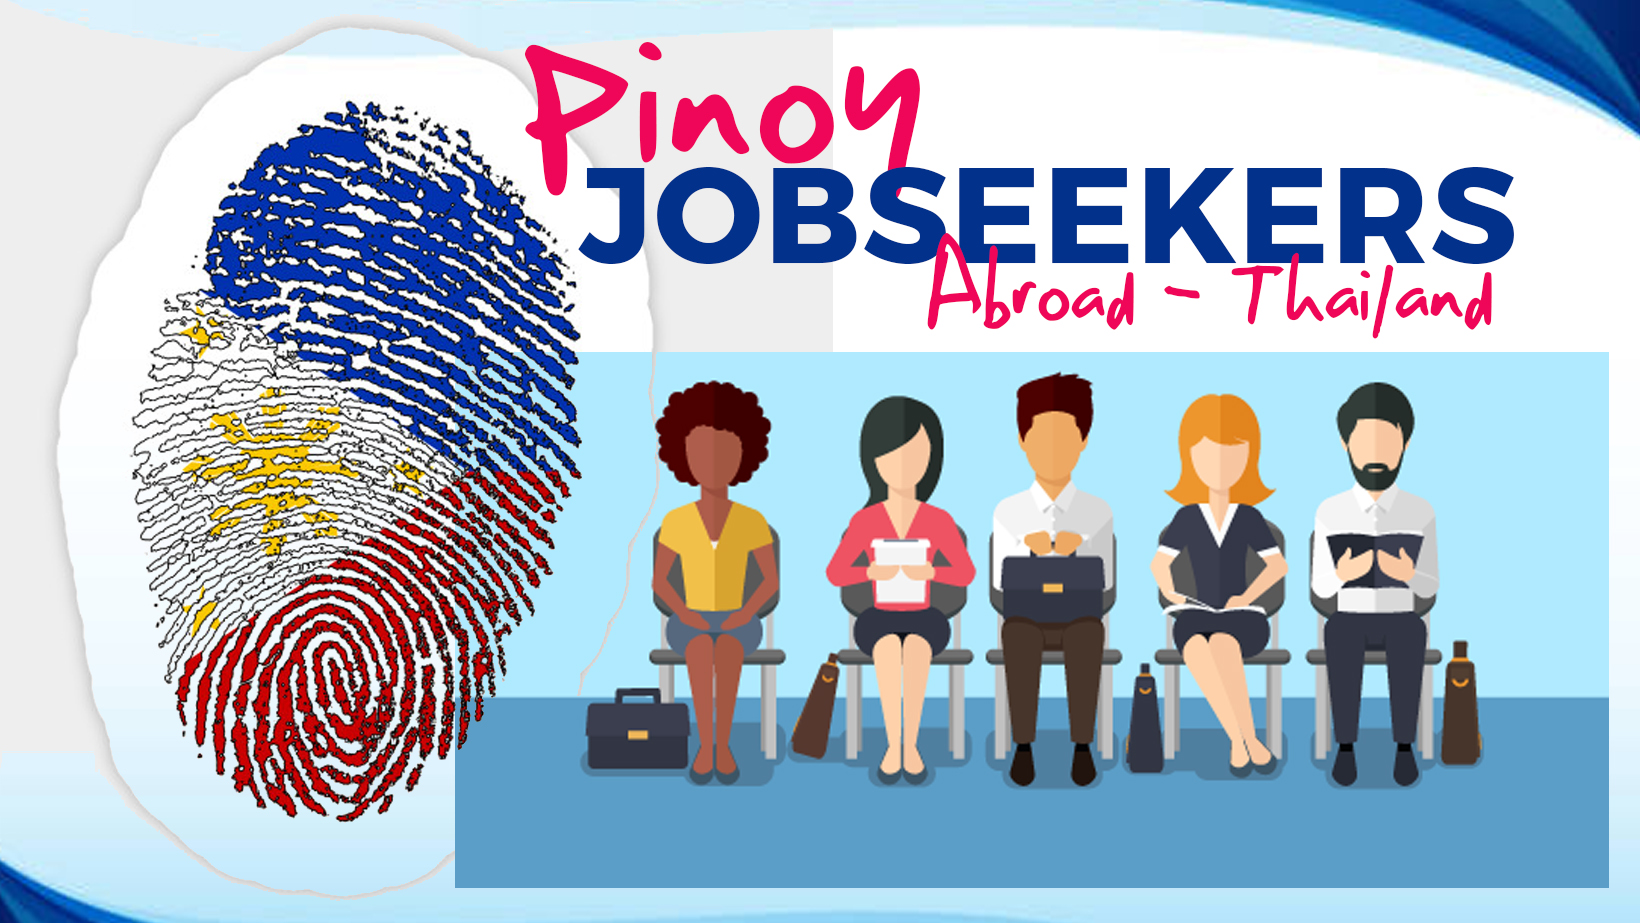 Pinoy Jobseekers Abroad Thailand